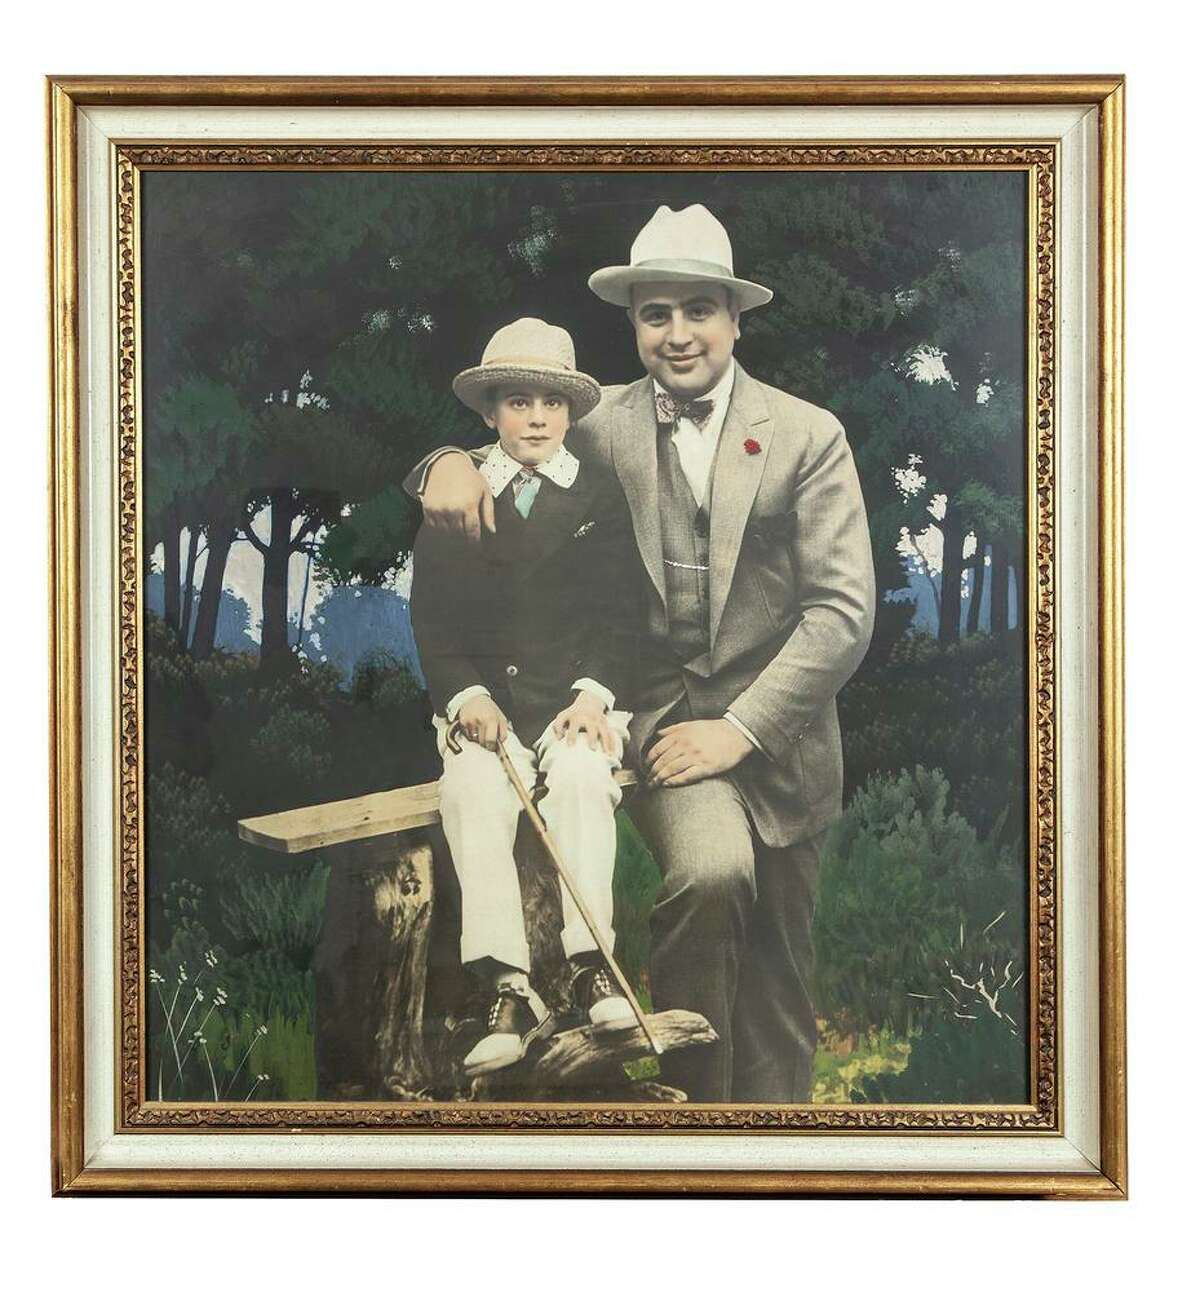 A hand-colored silver print of Al Capone and Sonny Capone is one of the items going up for auction.